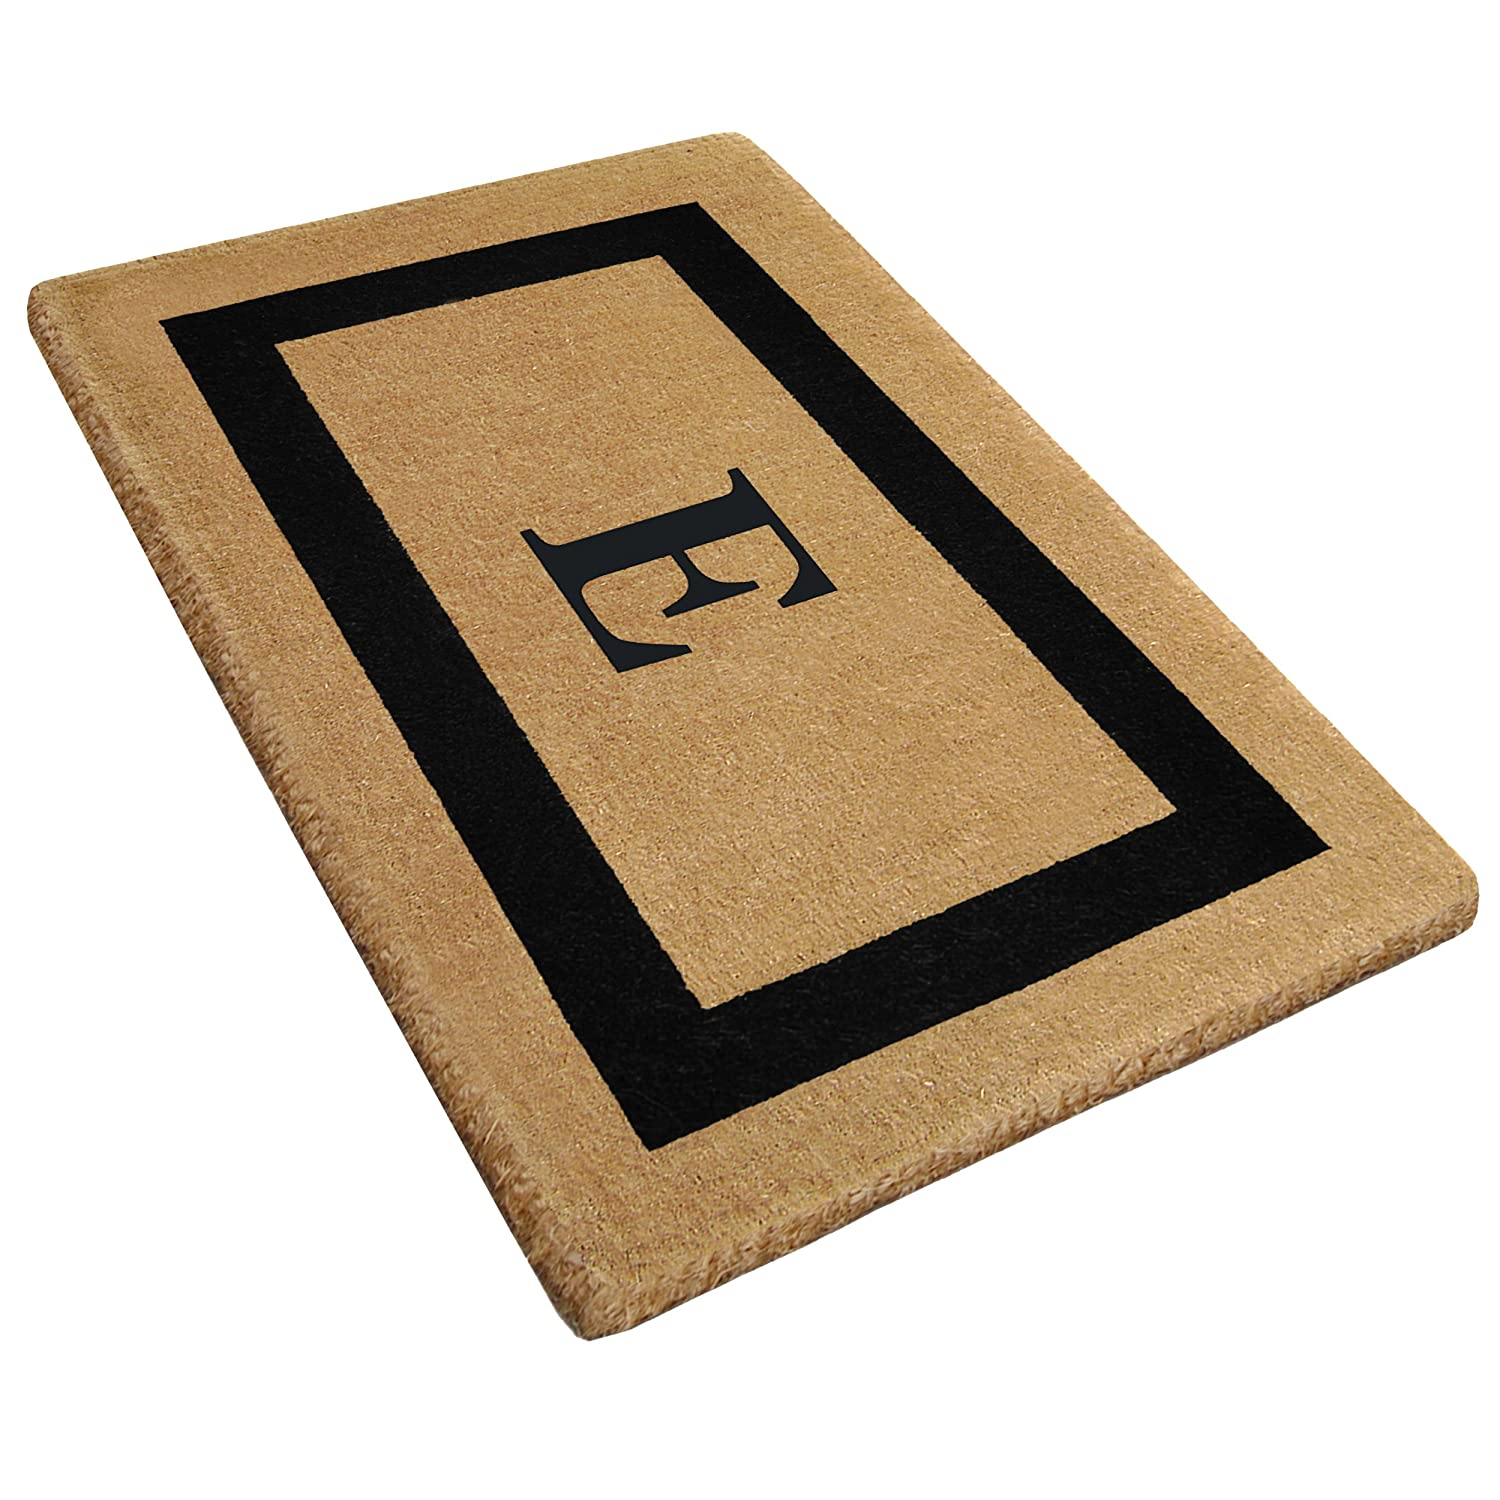 Heavy Duty Coco 30 x 48 Mat Black Single Picture Frame Monogrammed N Nedia Enterprises O2080N